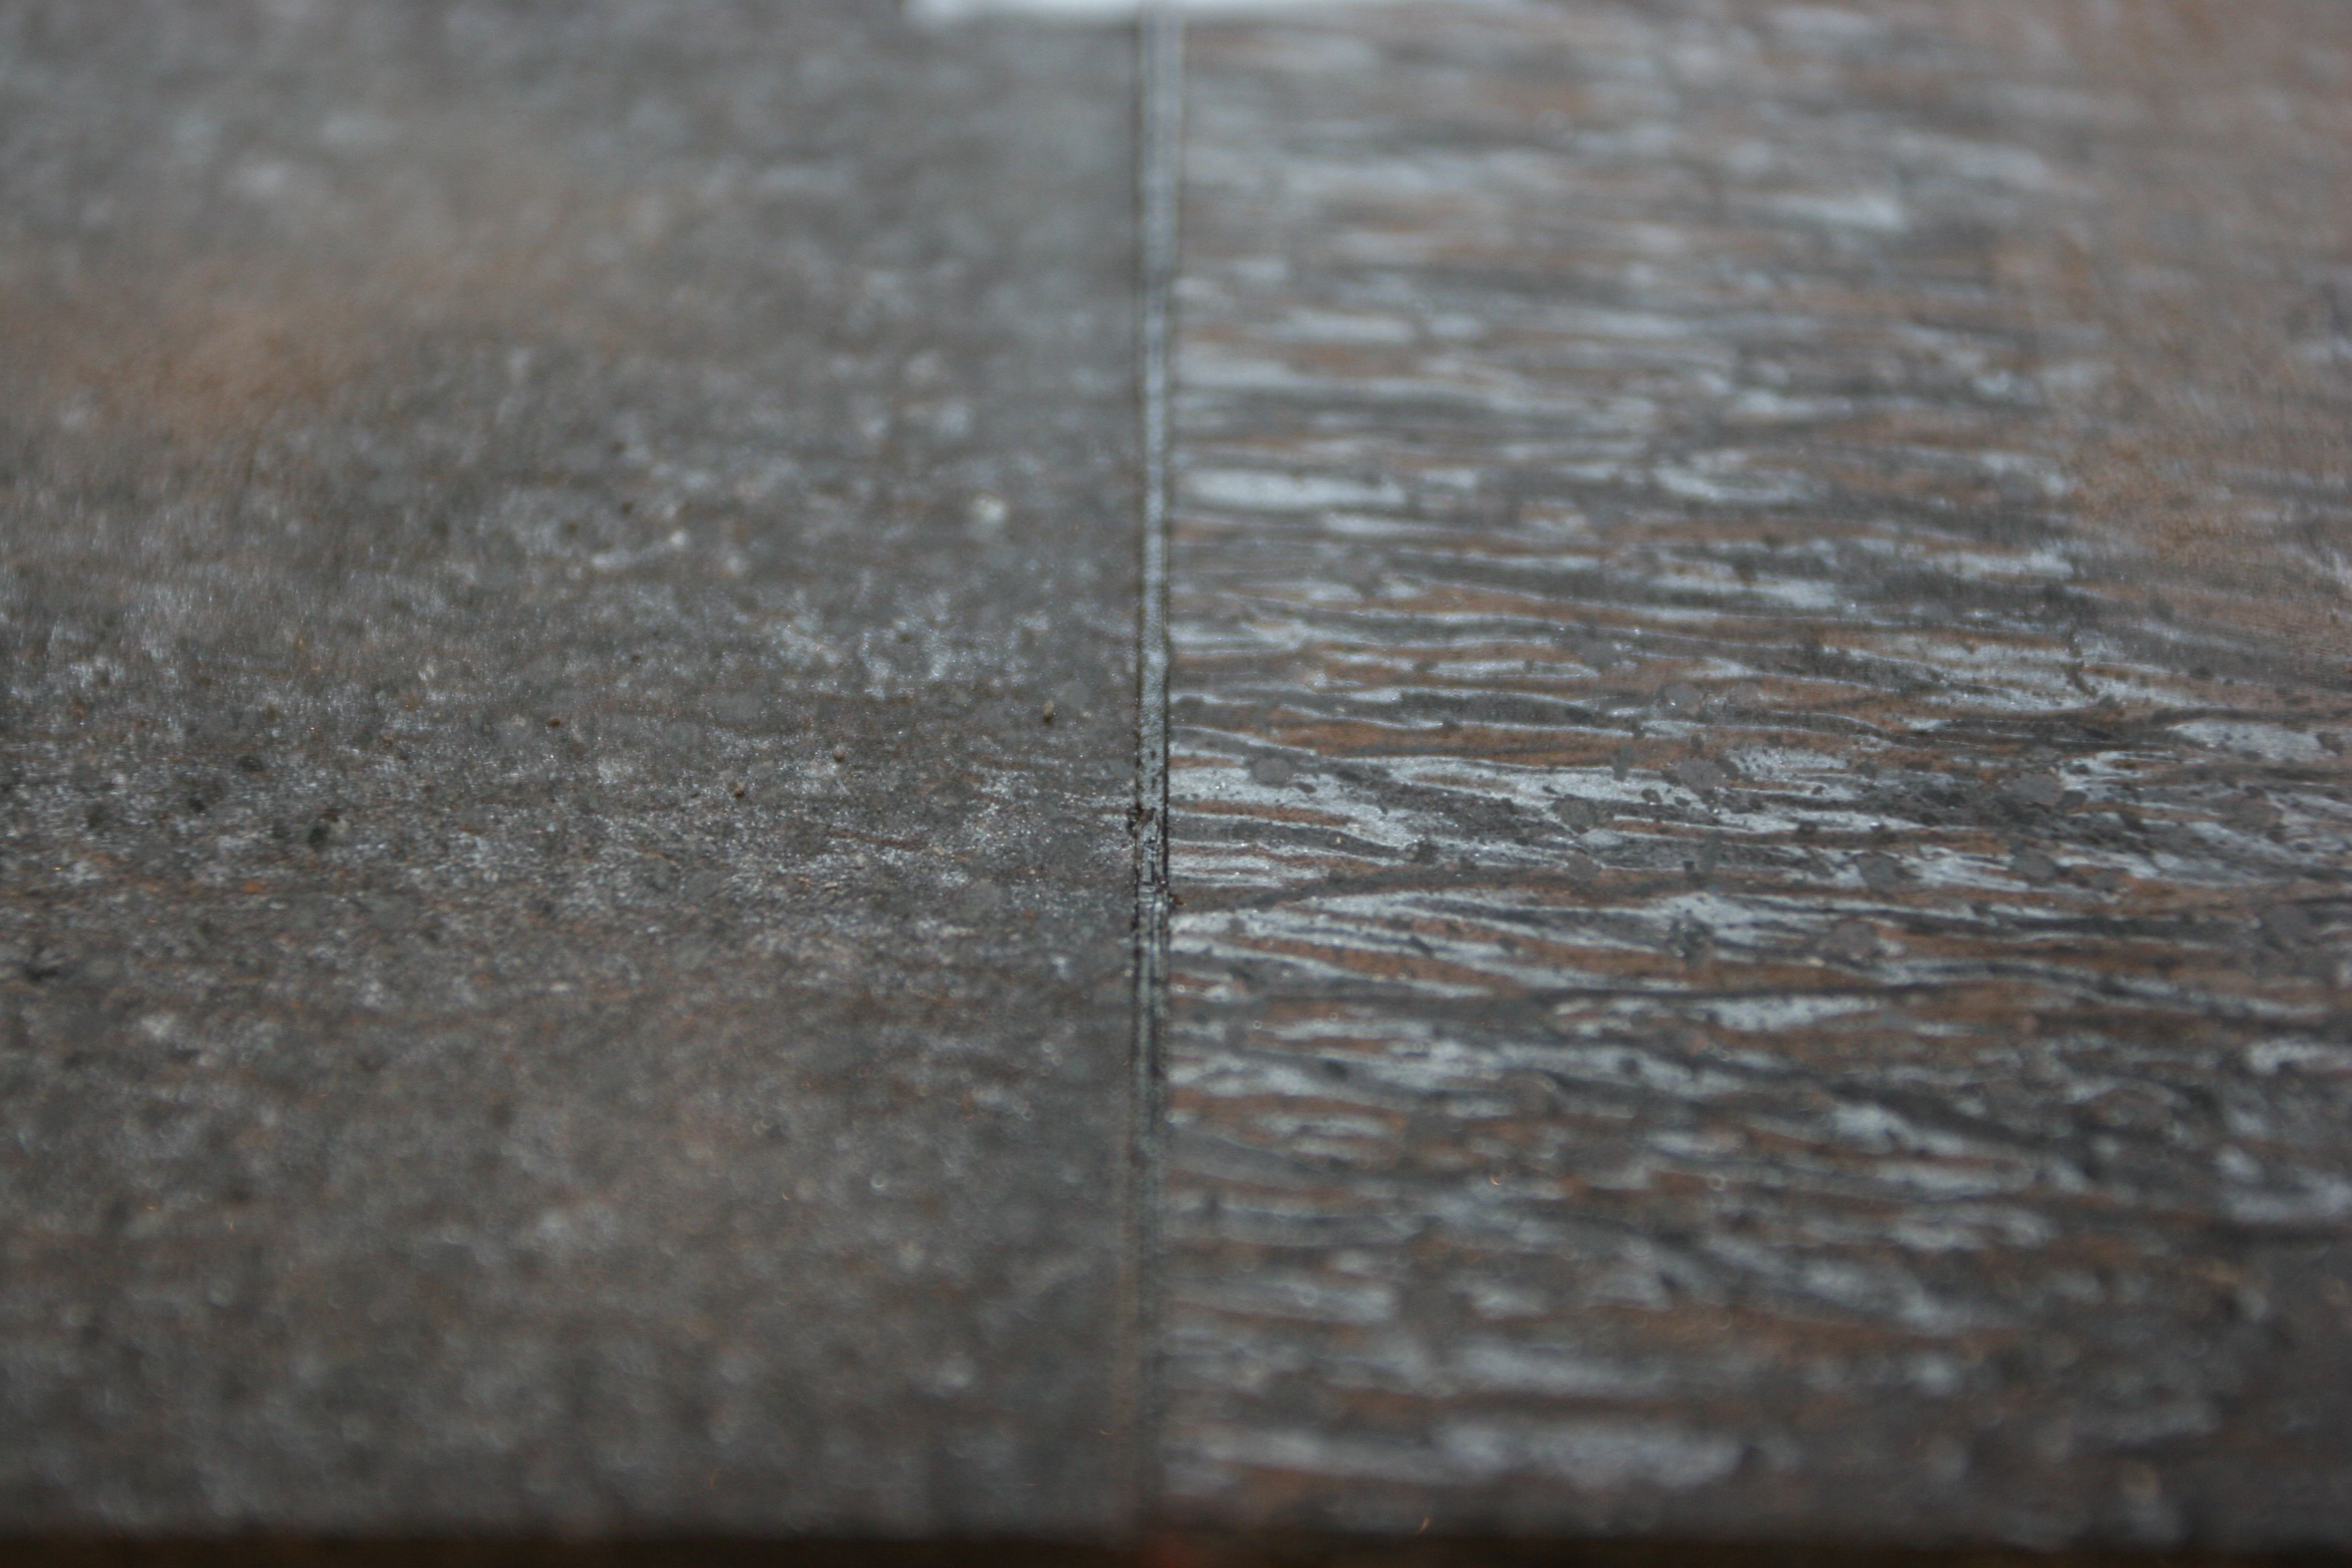 The seam at the sink. The two slabs we chose look amazing together. The seam is super cool.